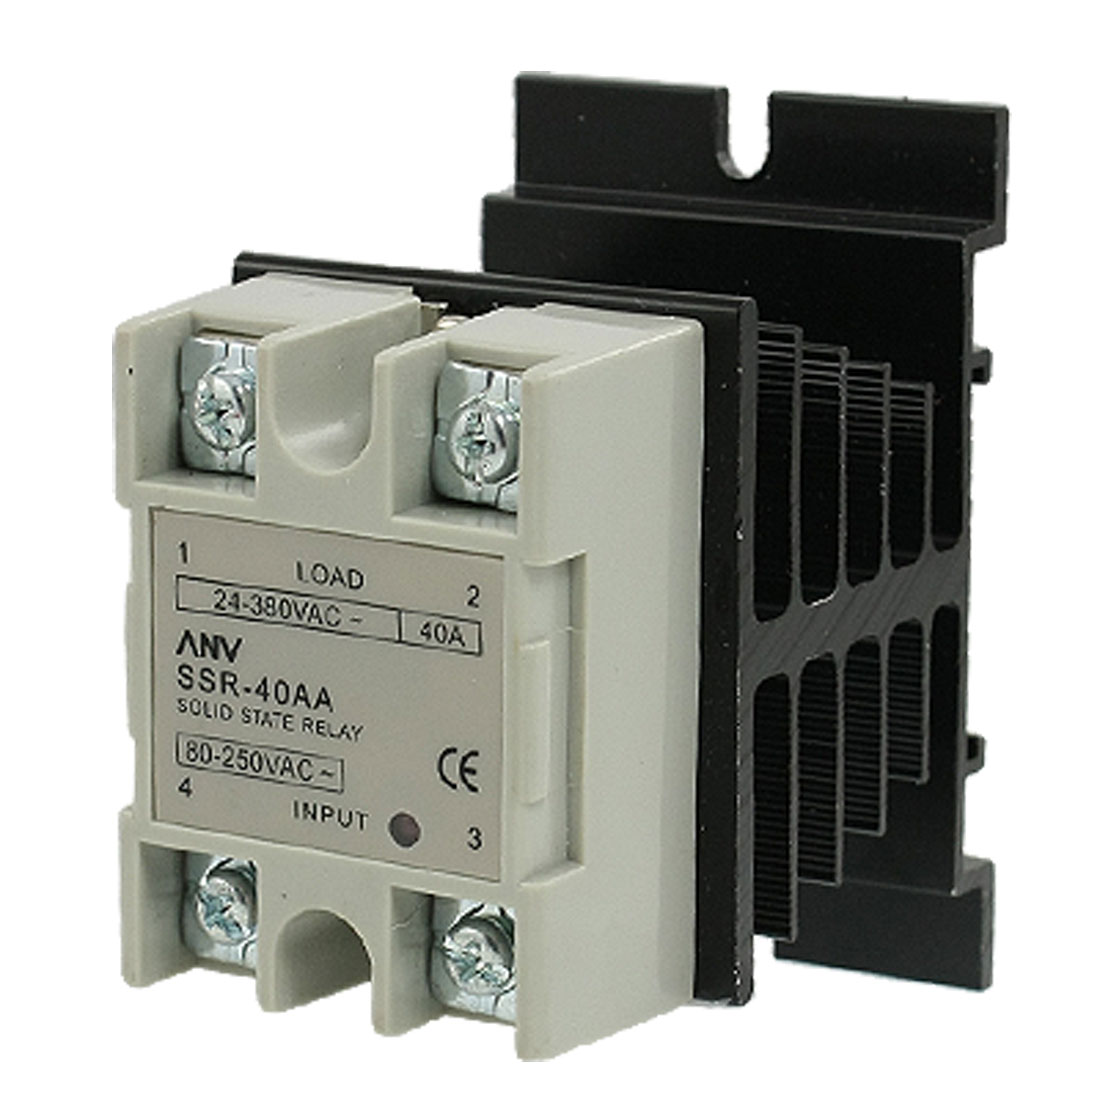 AC 80-250V AC 24-380V 40A AC to AC Single Phase SSR Solid State Relay w Heat Sink